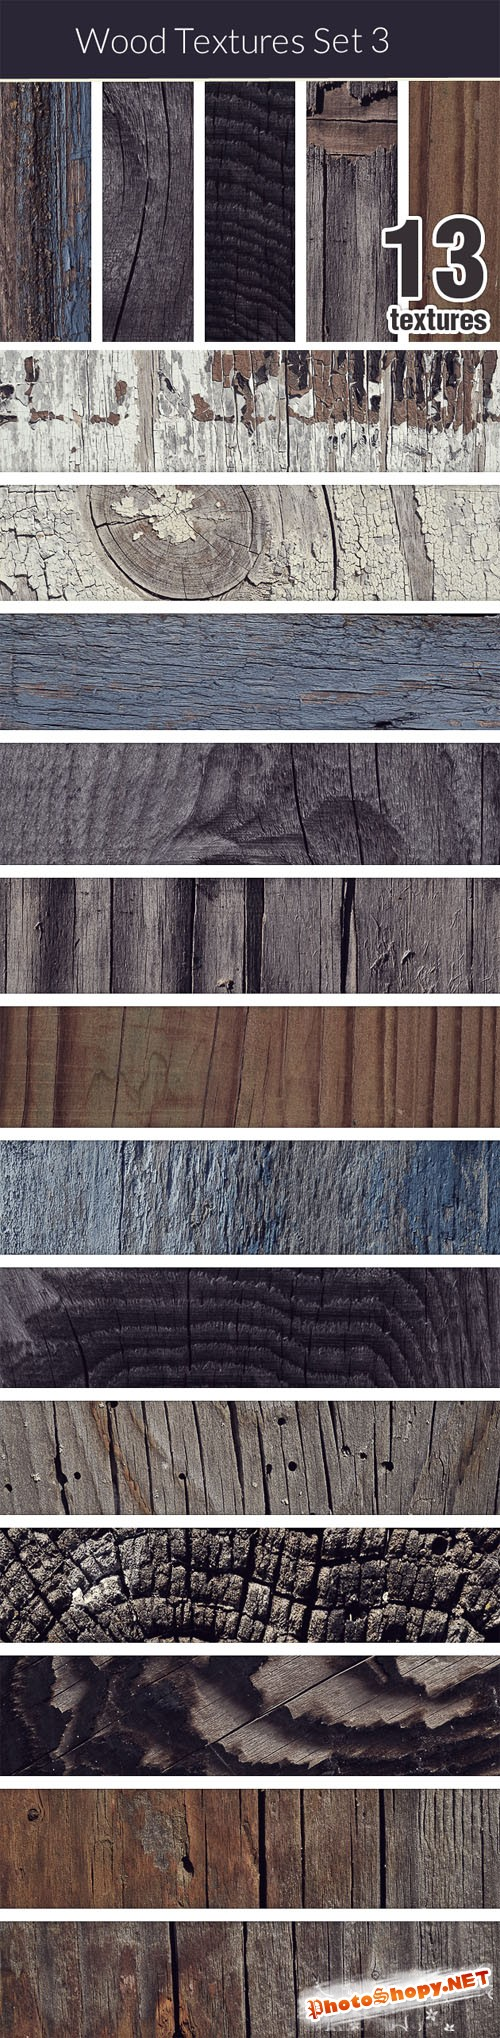 Designtnt - Wood Textures Set 3